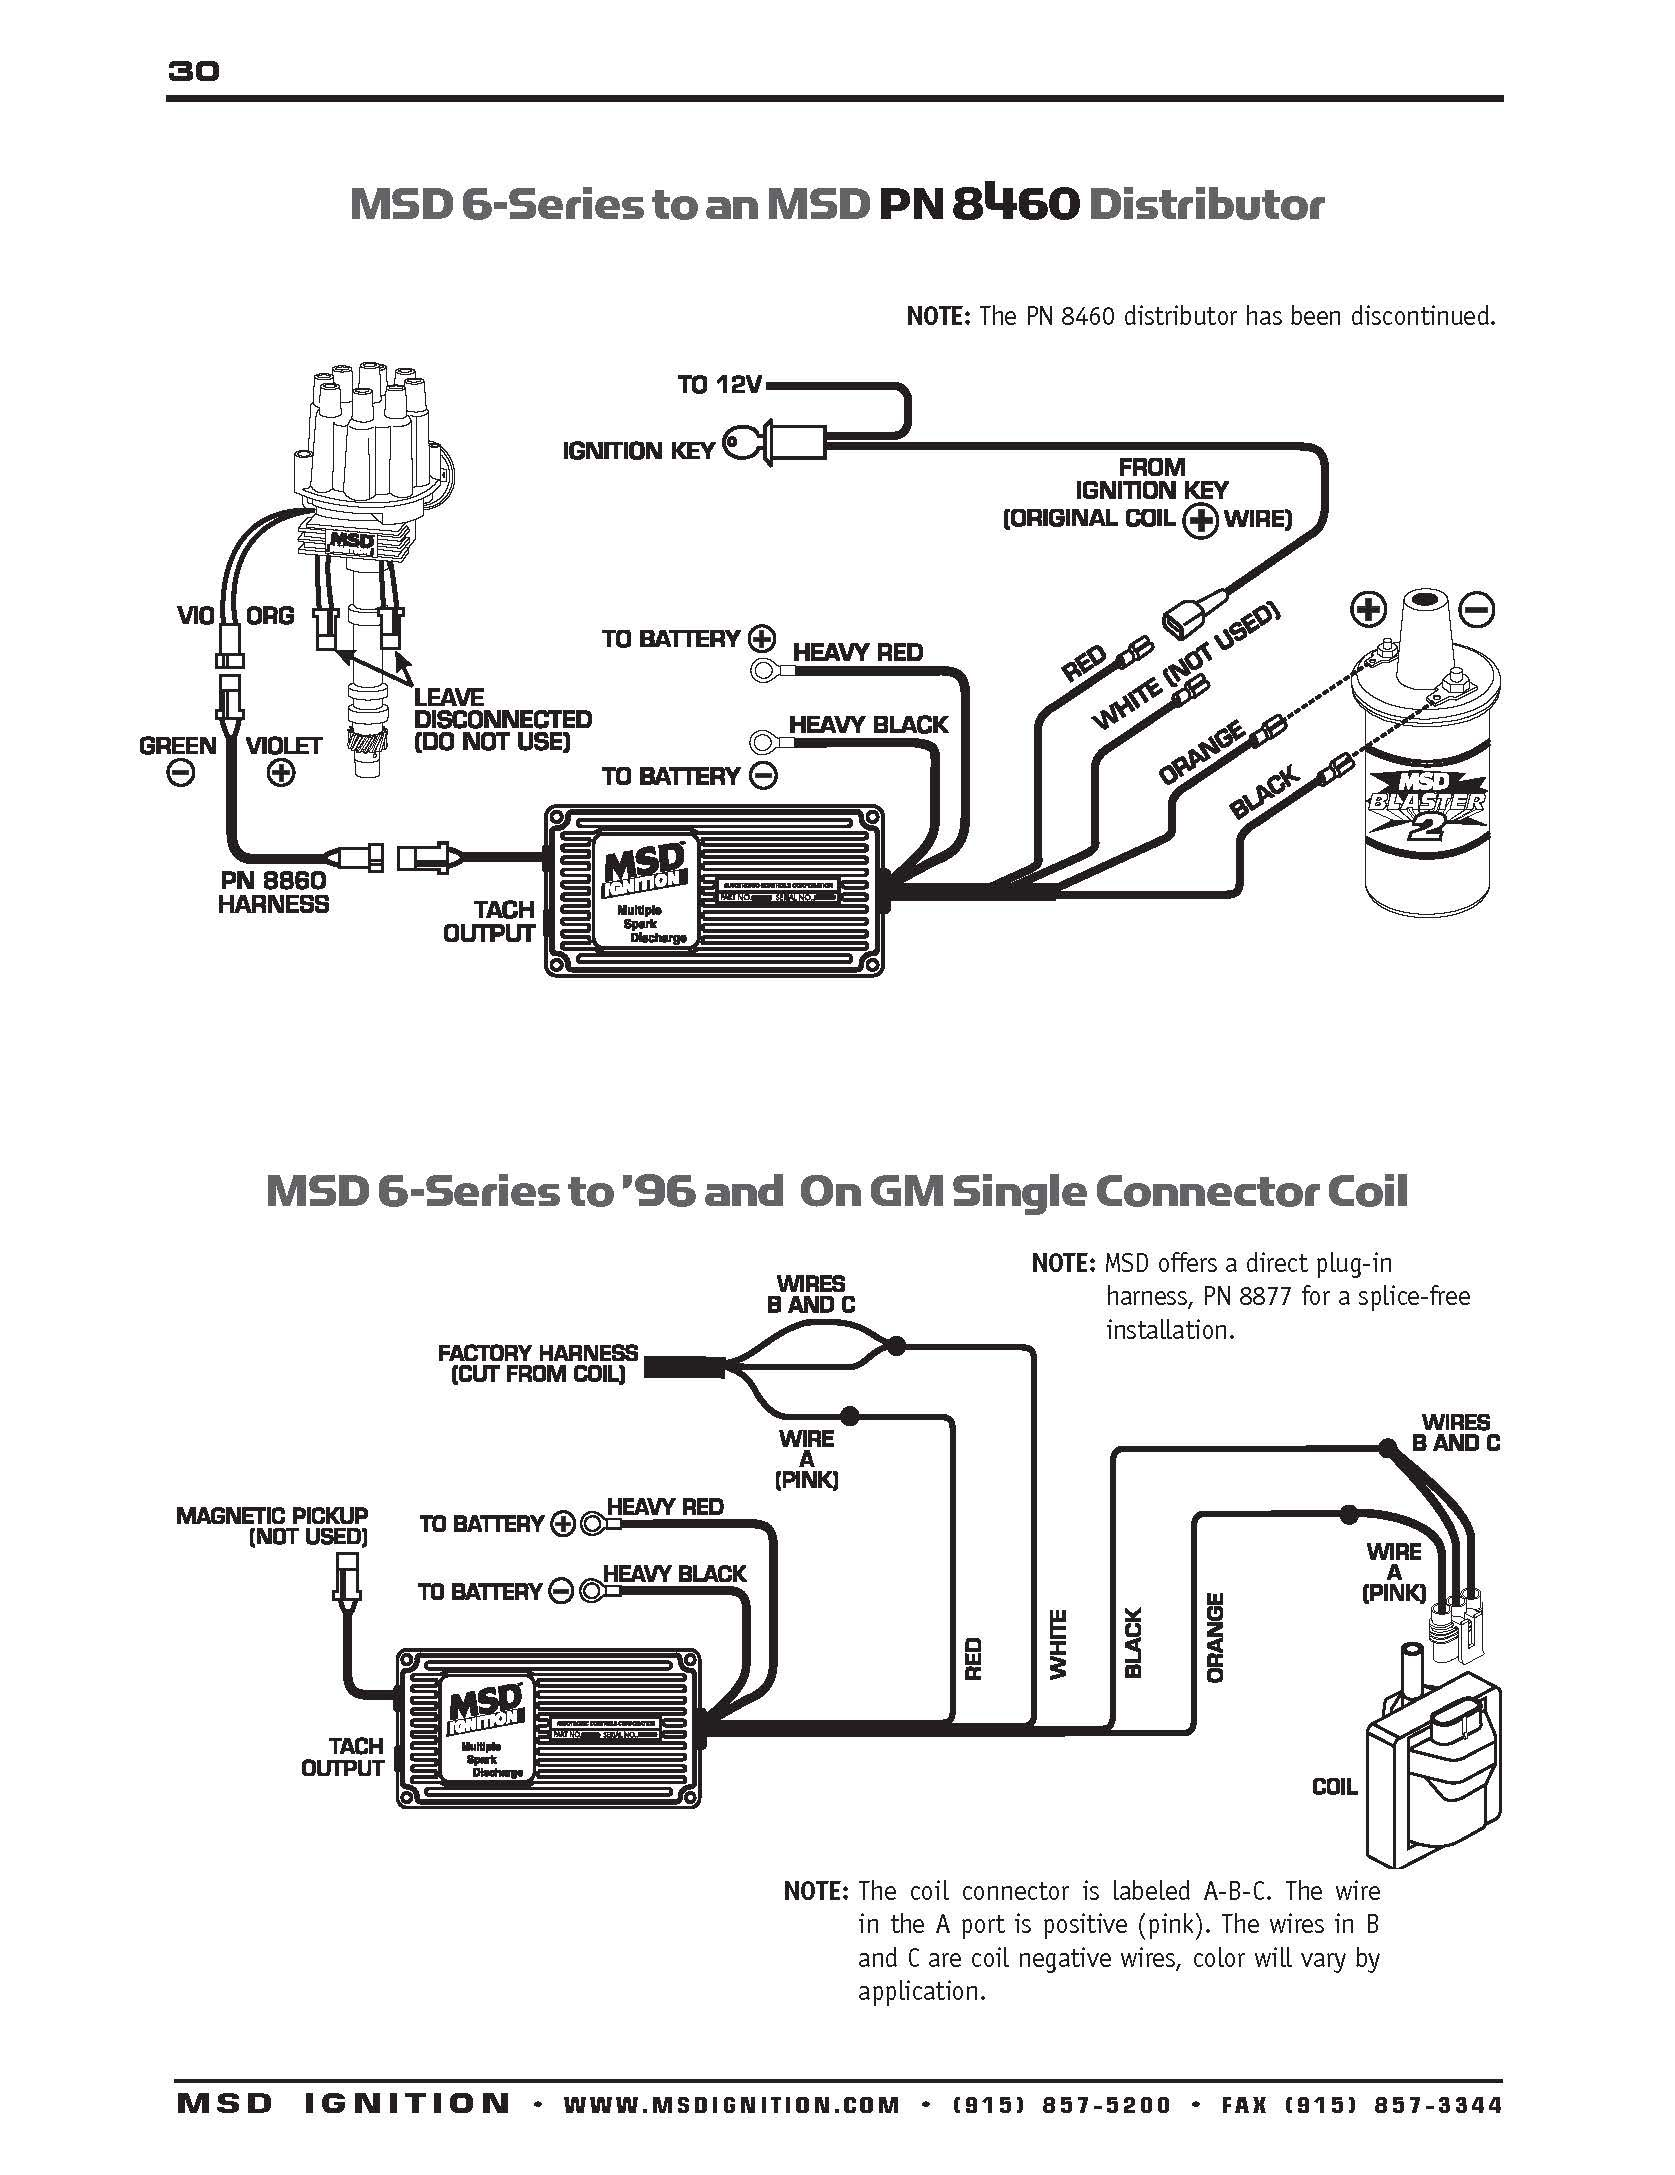 Msd Ignition Wiring Diagrams In Msd Distributor Diagram On Msd Distributor  Wiring Diagram | Diagram, Msd, Electrical diagramPinterest